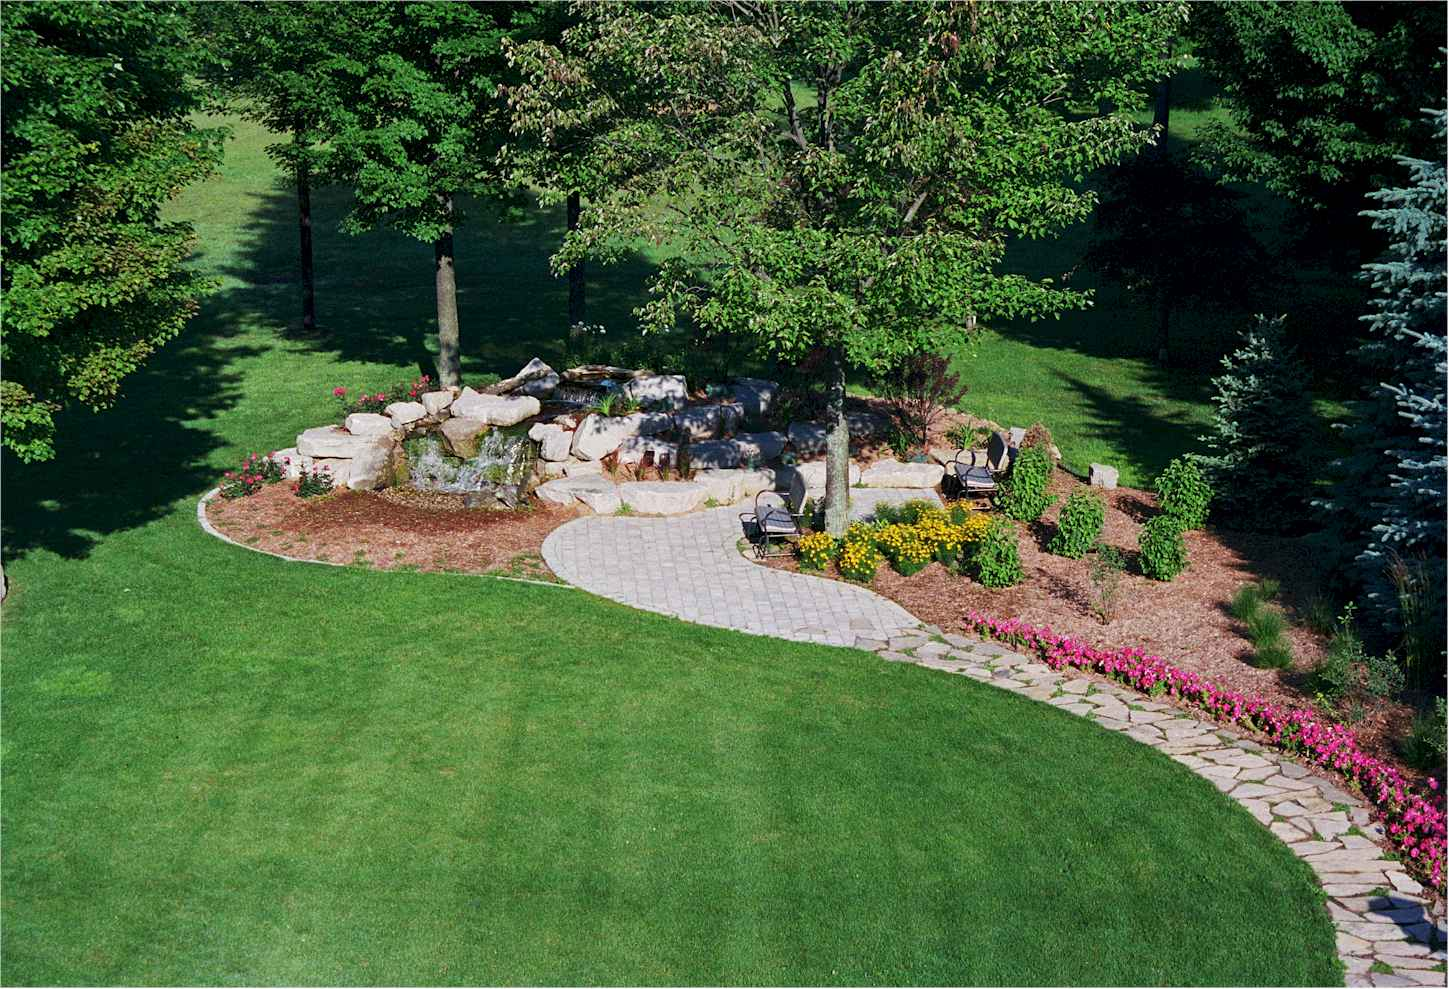 5 landscaping ideas to wow the neighbors for Back garden landscape designs